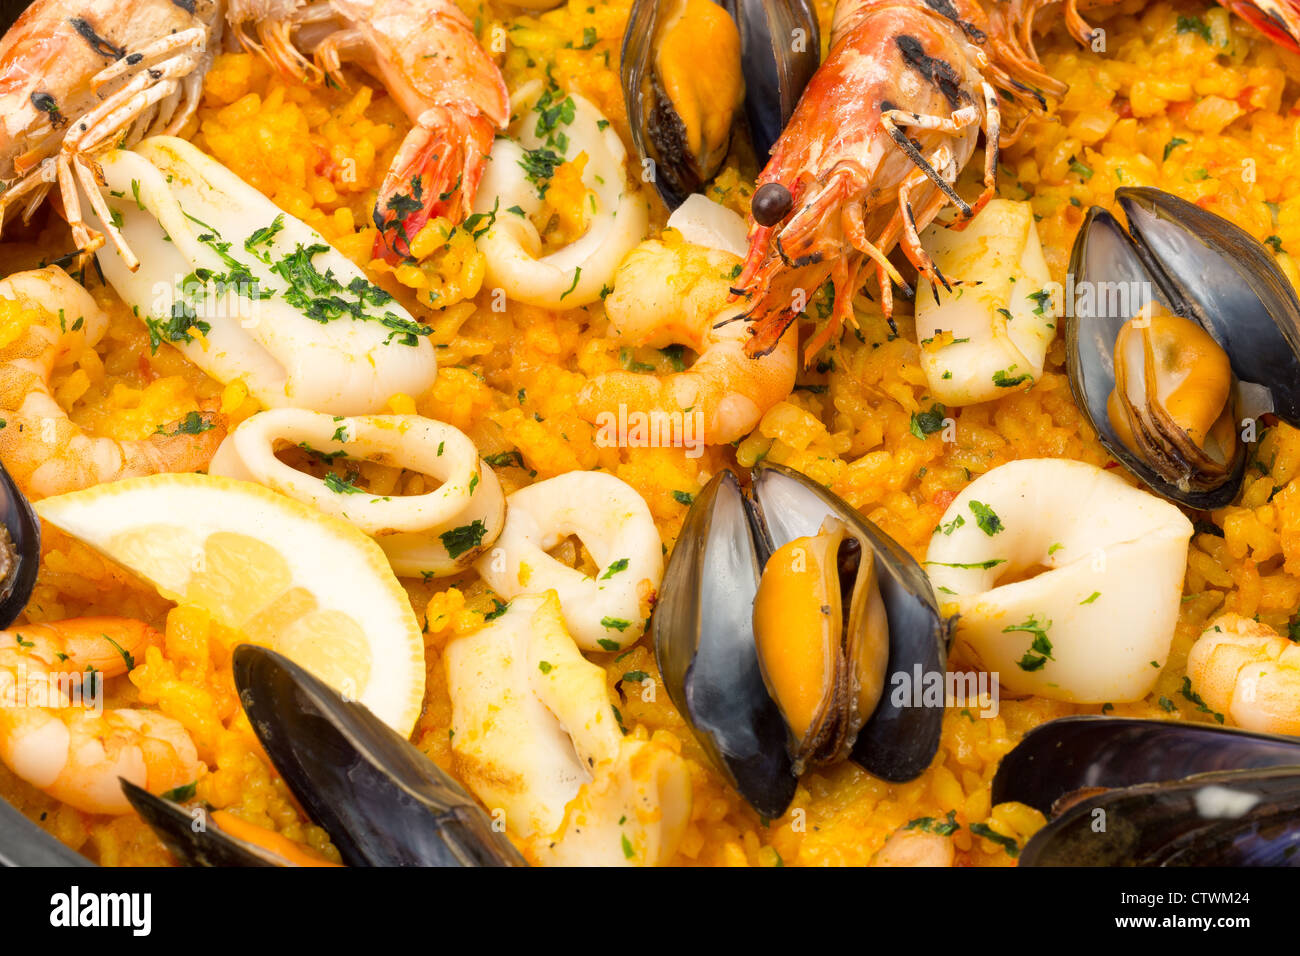 Close-up of a Seafood paella - studio shot with a shallow depth of field - Stock Image